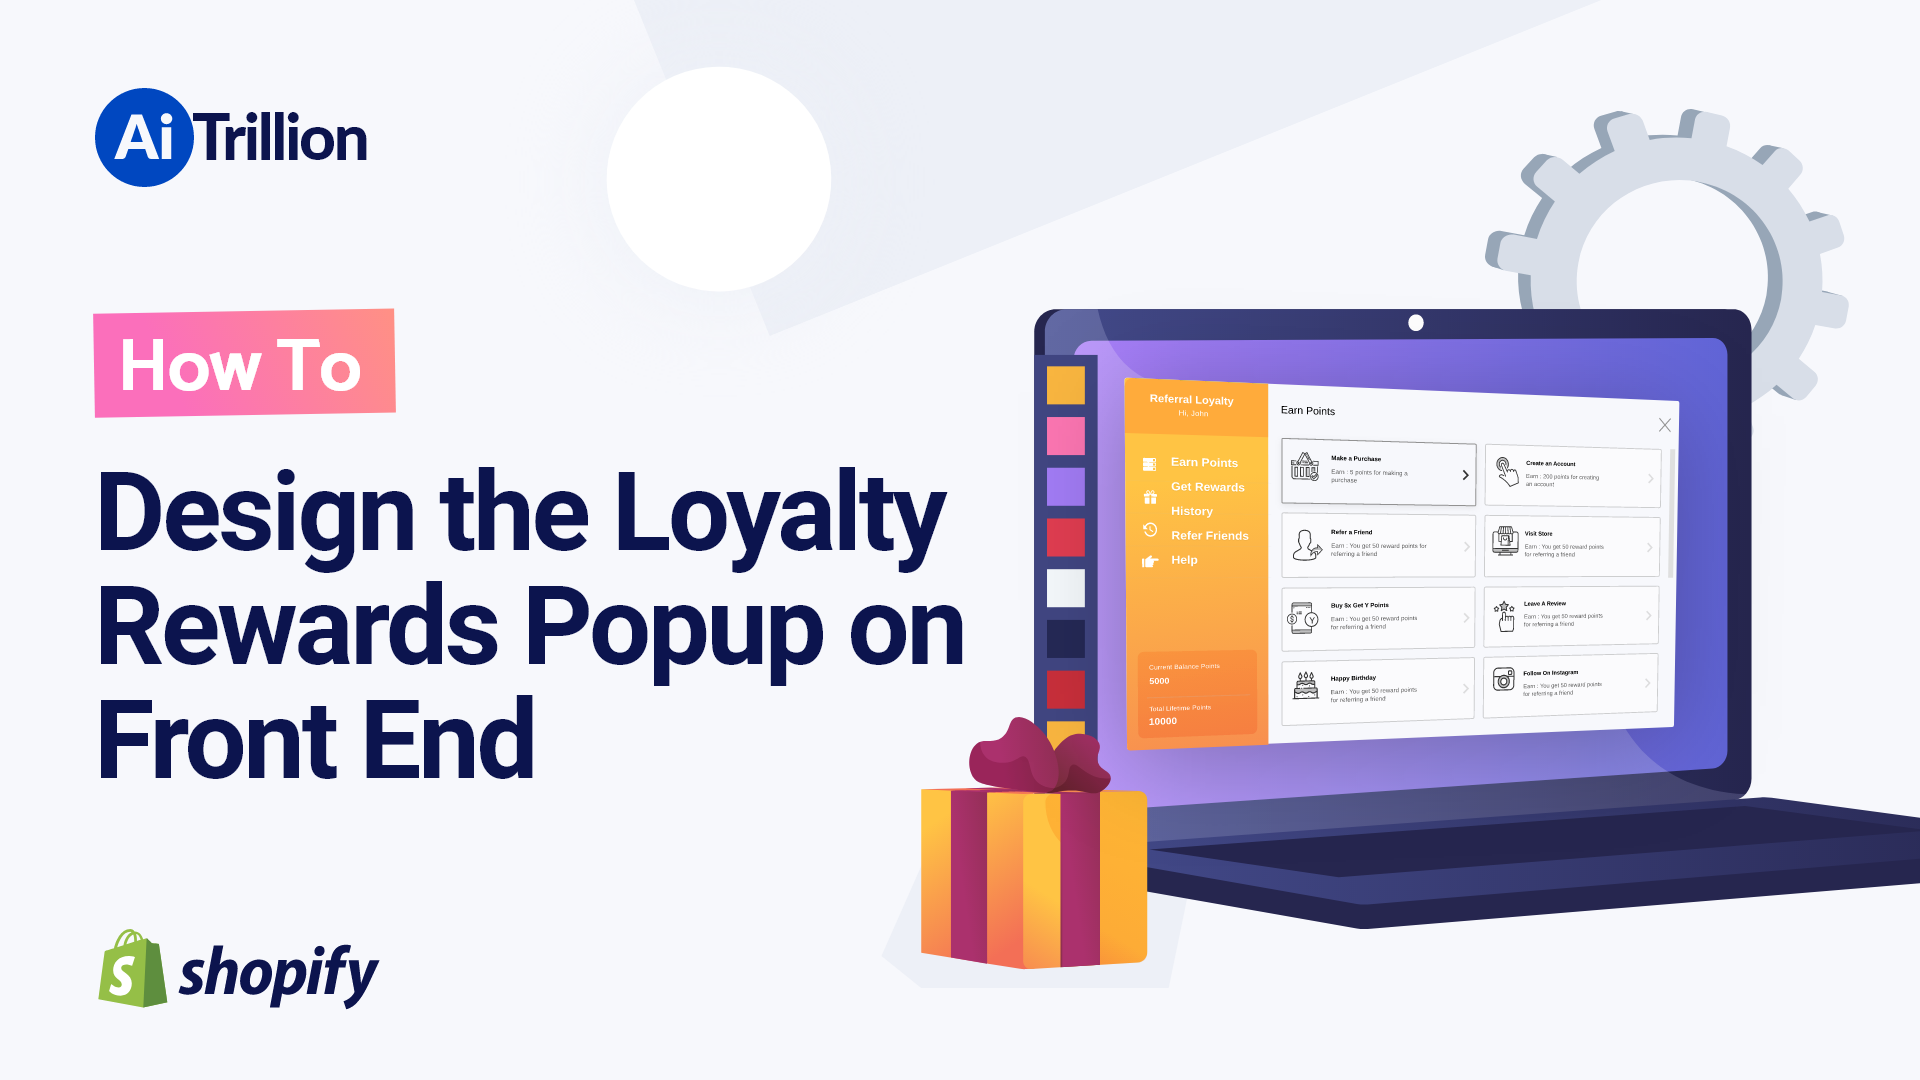 How To Design the Loyalty Rewards Popup on Front End